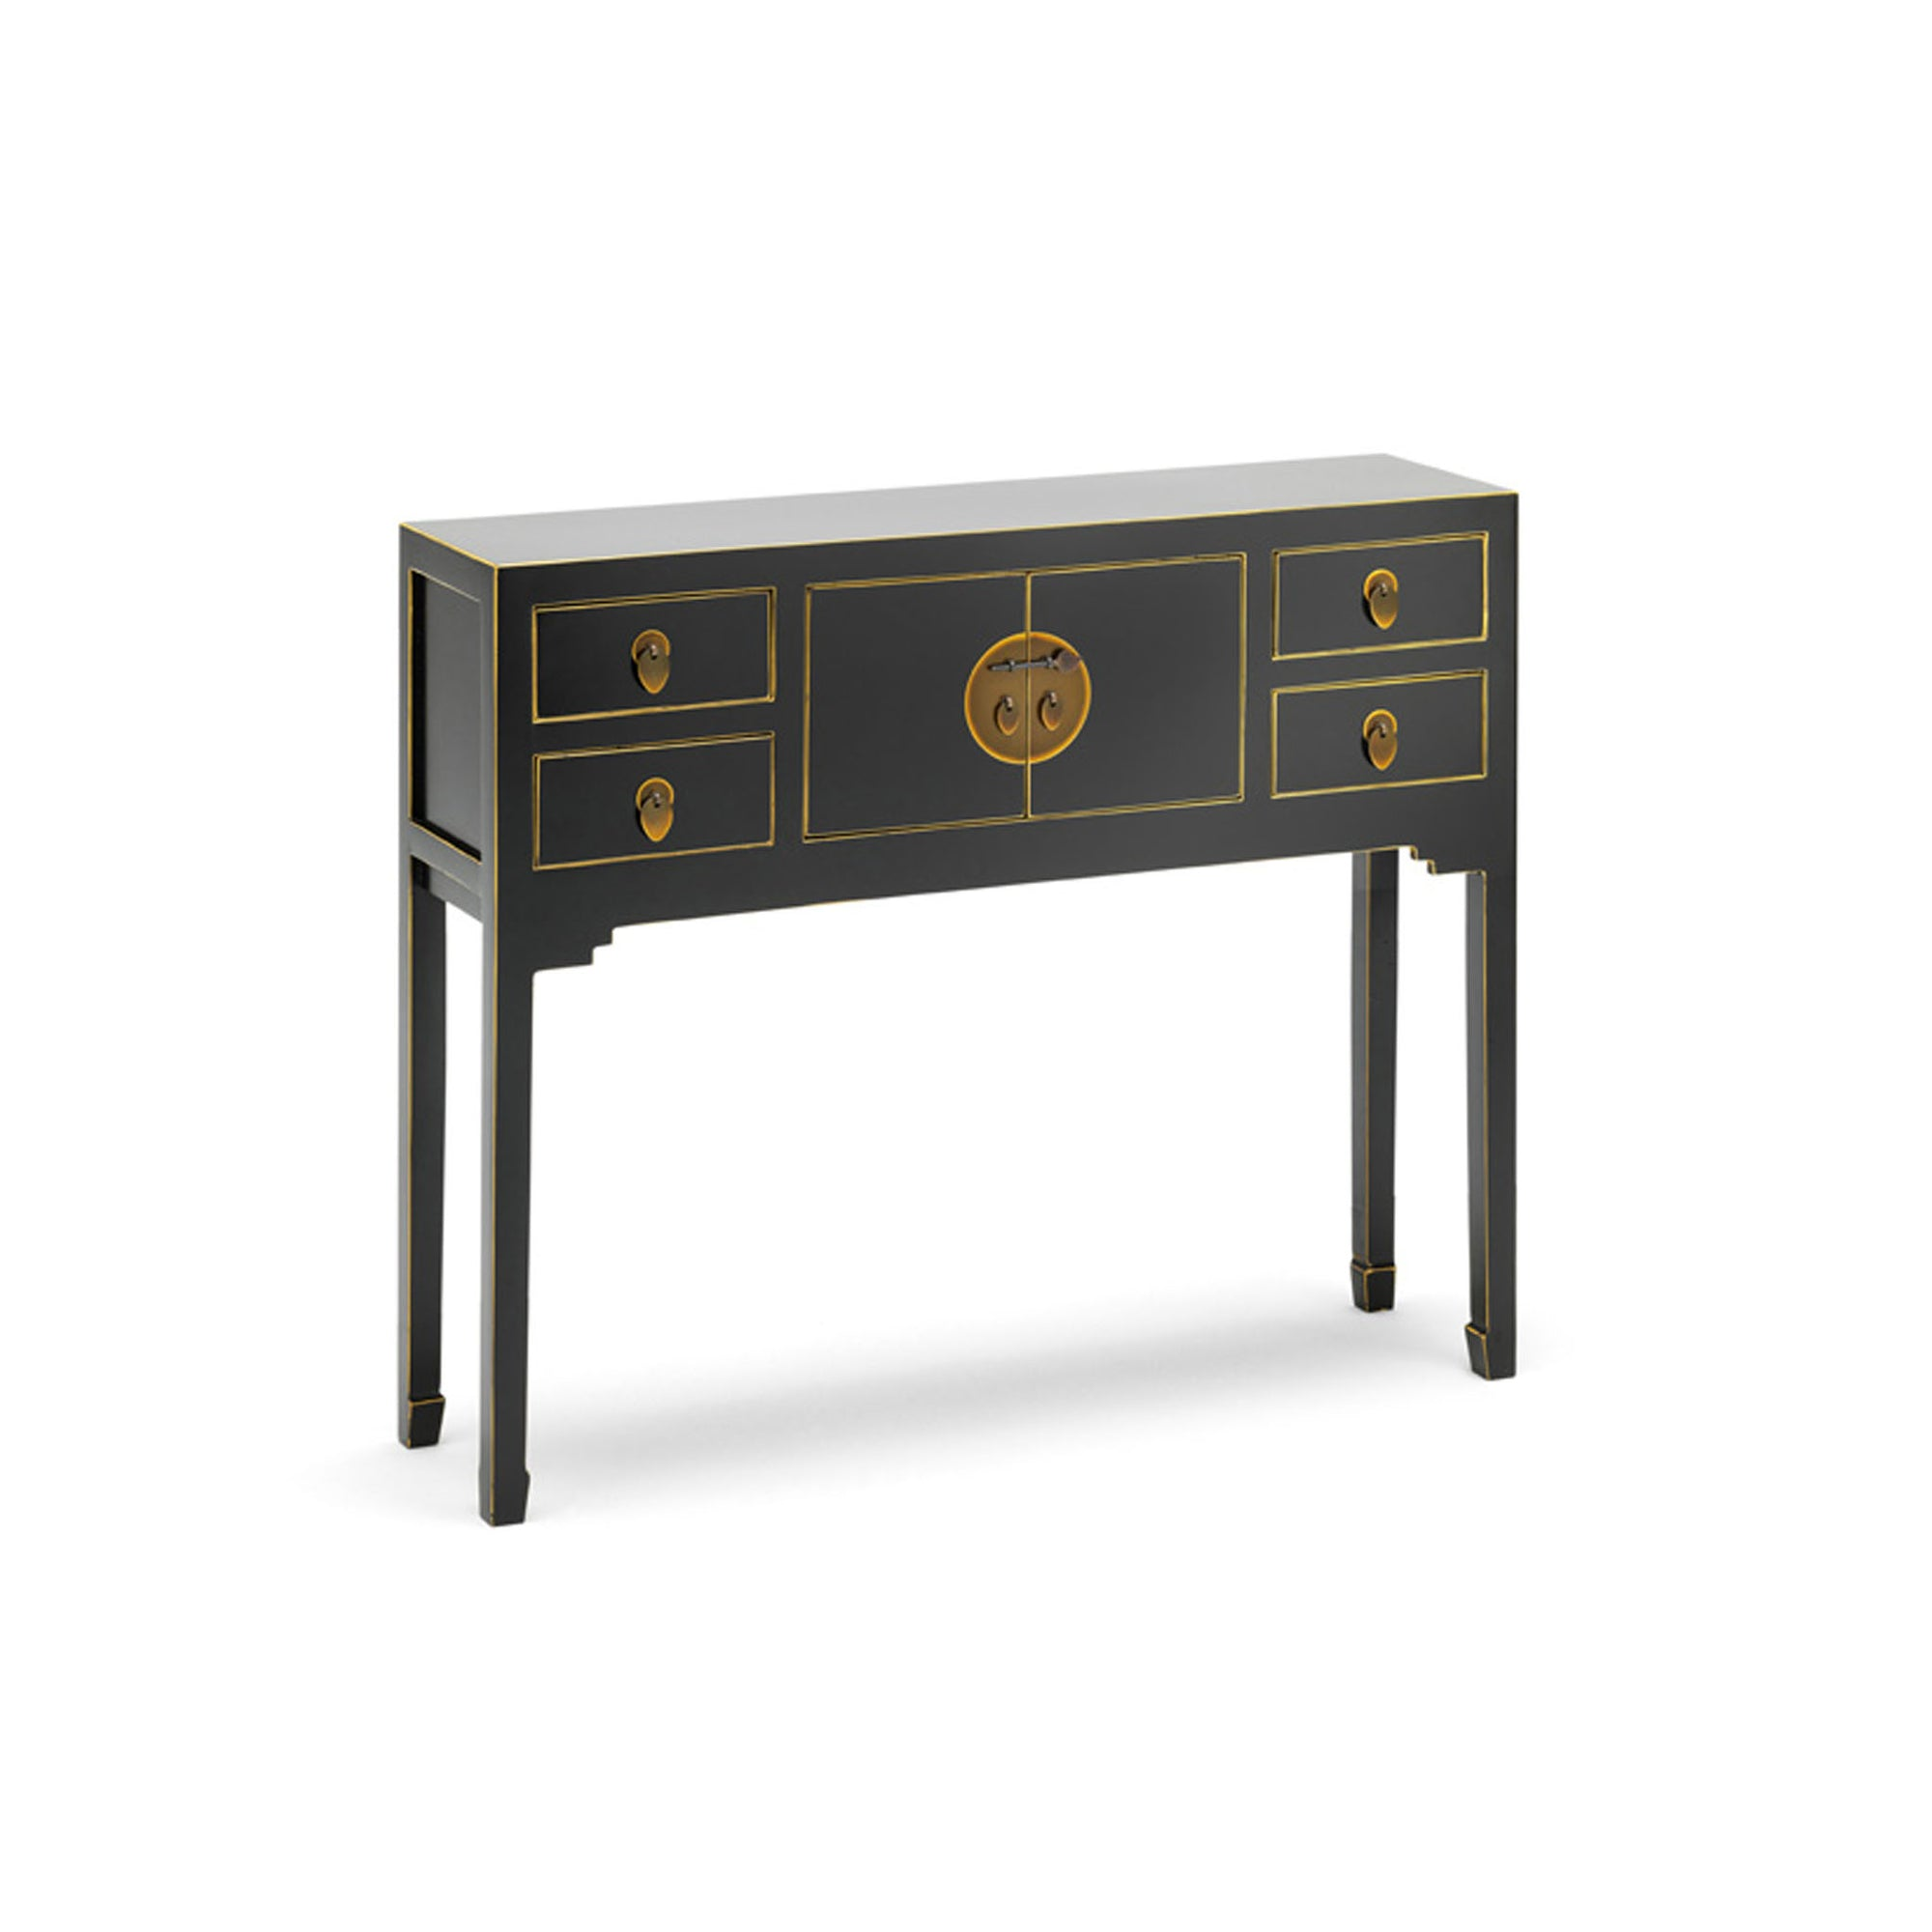 The Nine Schools Black Small Console Table by Roseland Furniture